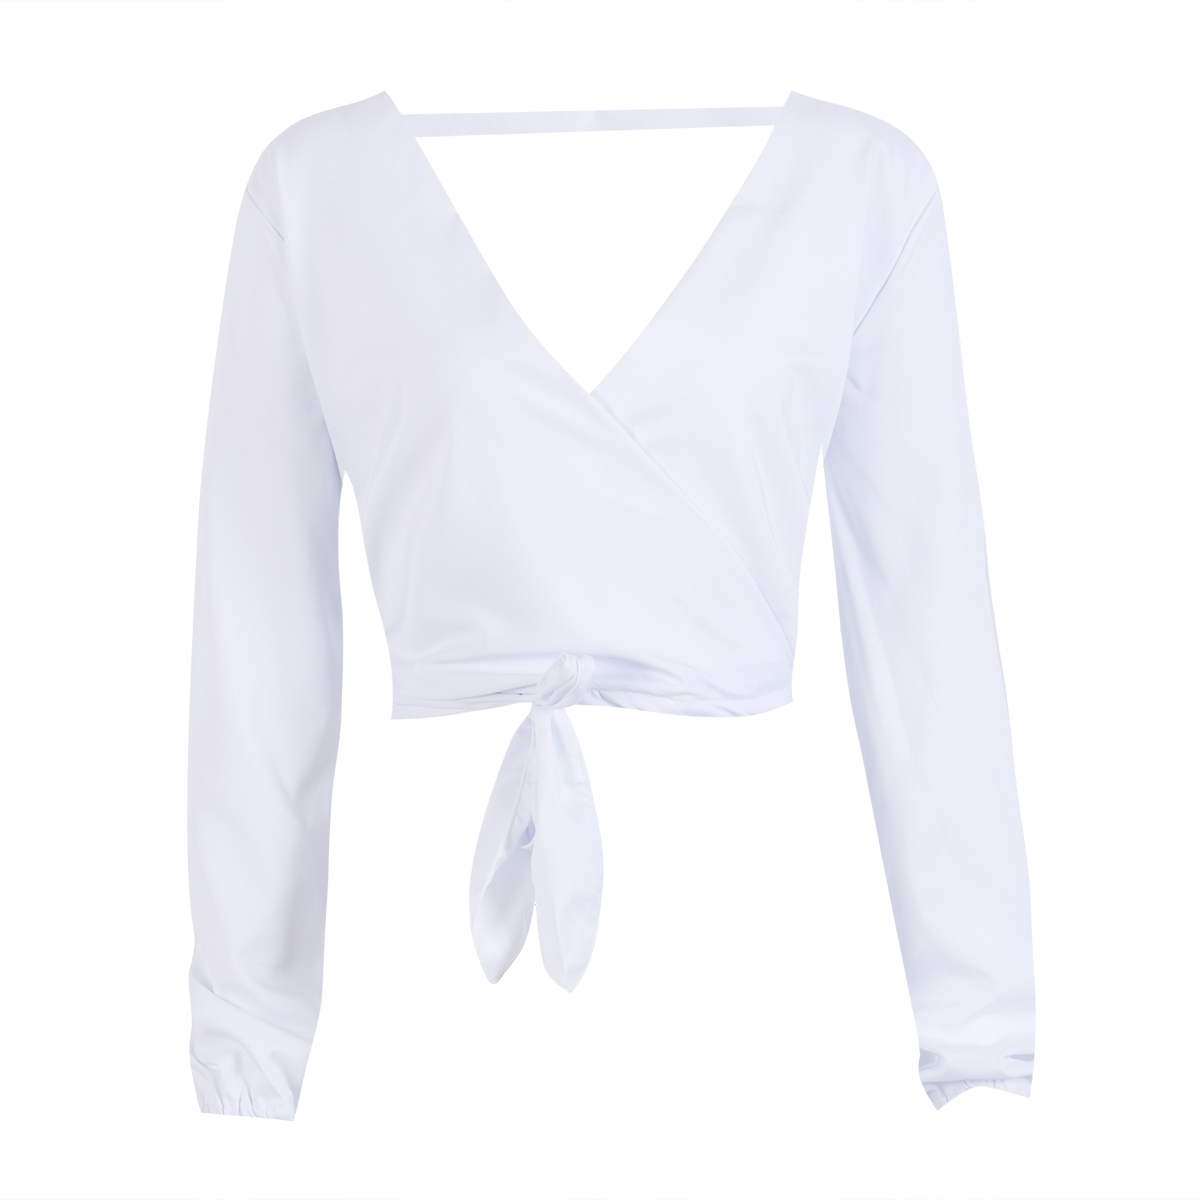 Women's Summer Long Sleeve <font><b>Shirt</b></font> Casual Crop Tops Deep V neck bangage <font><b>bow</b></font> <font><b>T</b></font> <font><b>Shirts</b></font> female <font><b>T</b></font>-<font><b>shirt</b></font> for women S to XL image